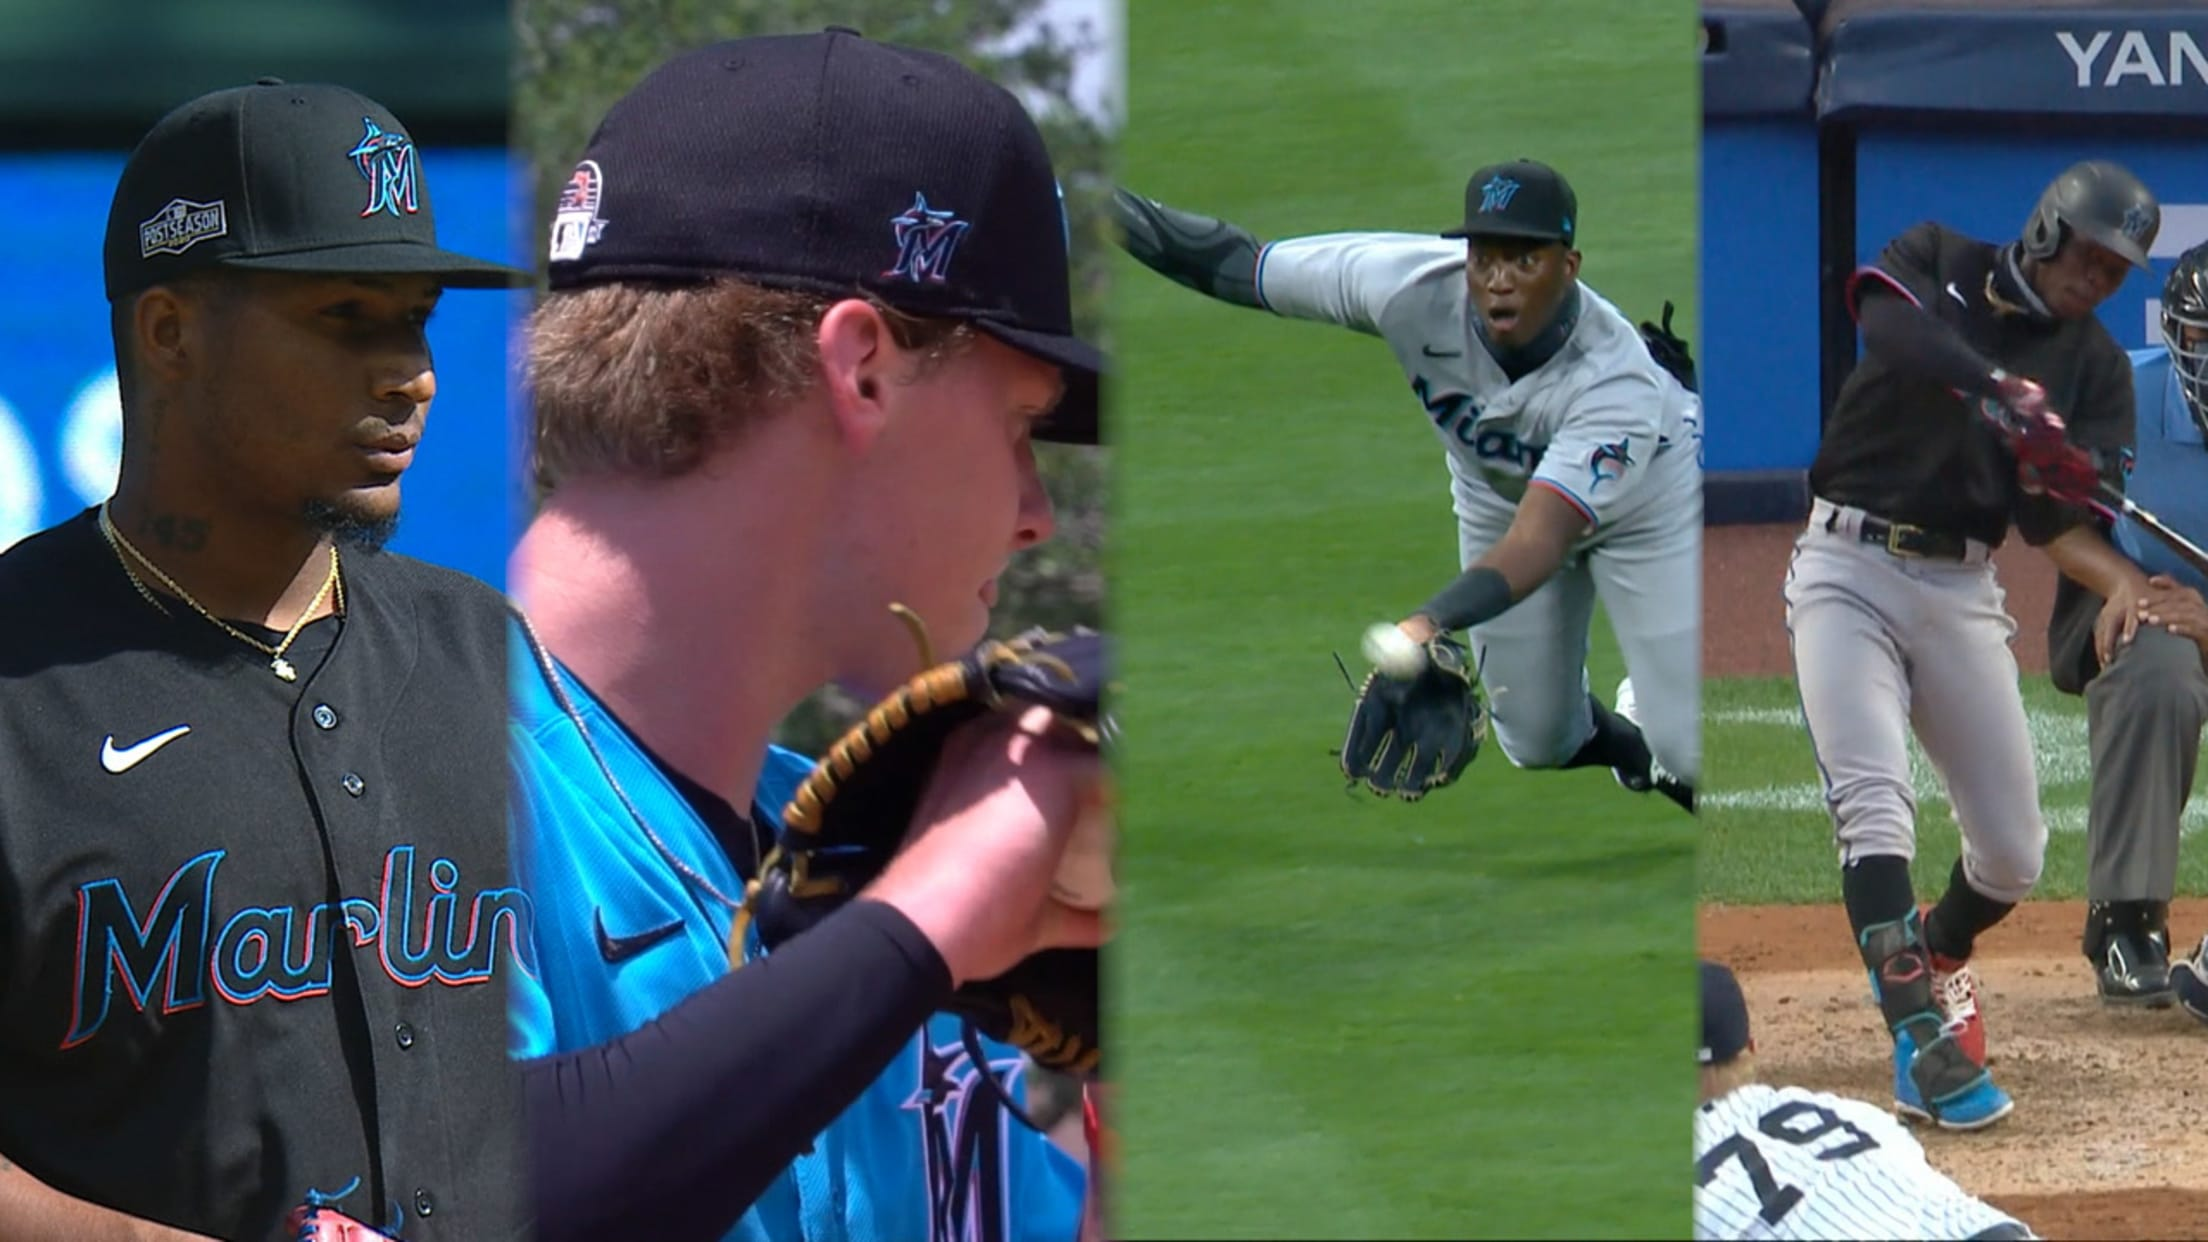 Marlins' prospects on the rise